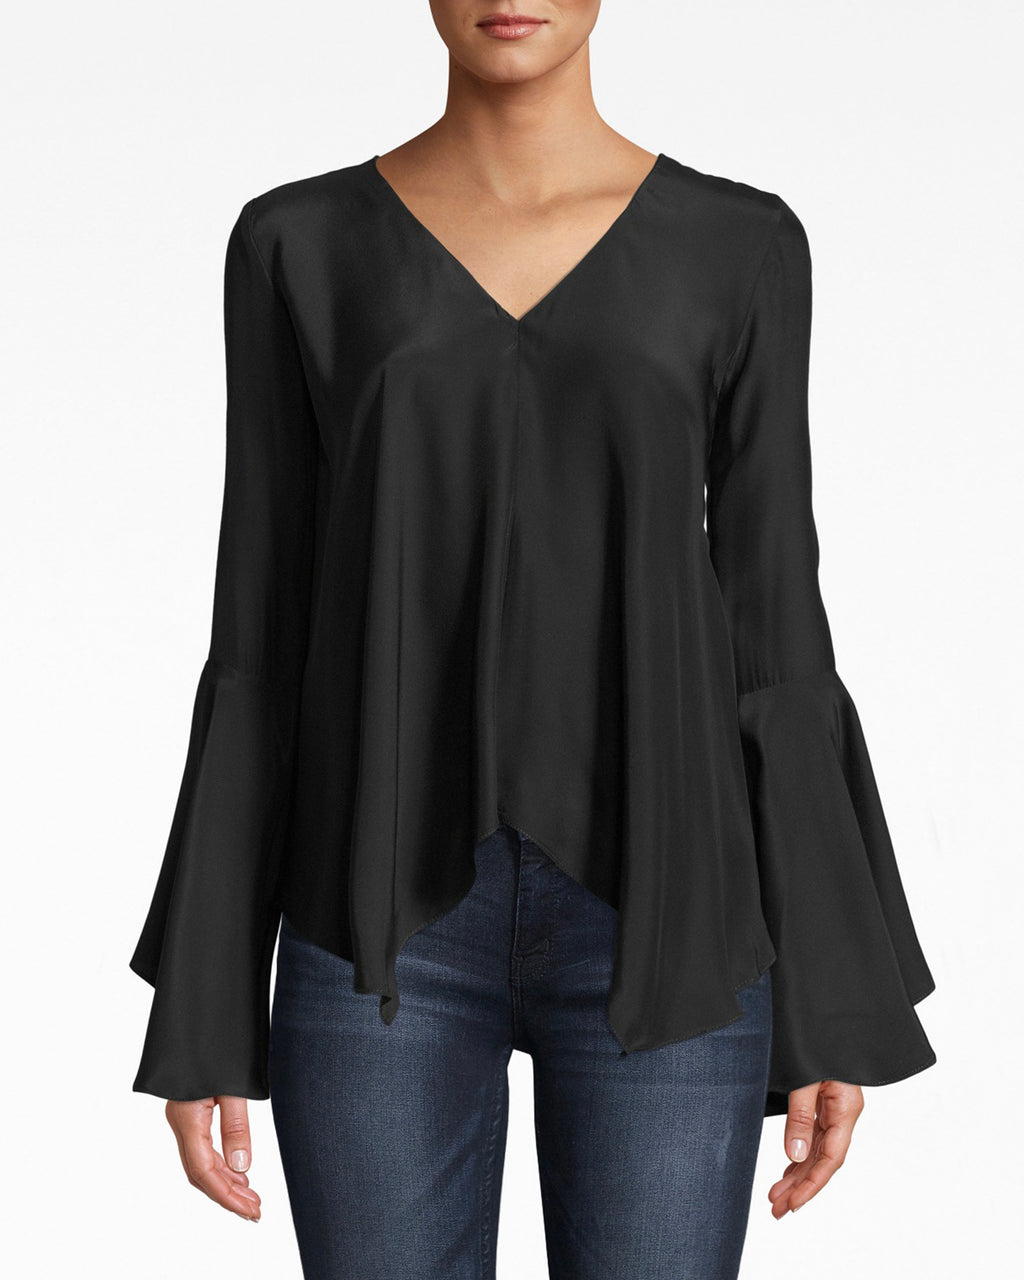 BE10376 - SILK BELL SLEEVE TOP - tops - blouses - Flirty and feminine, this bell sleeve v neck top has a simple silhouette that's best matched with denim or dress pants. The back upper band adds a modern shape. Silk.